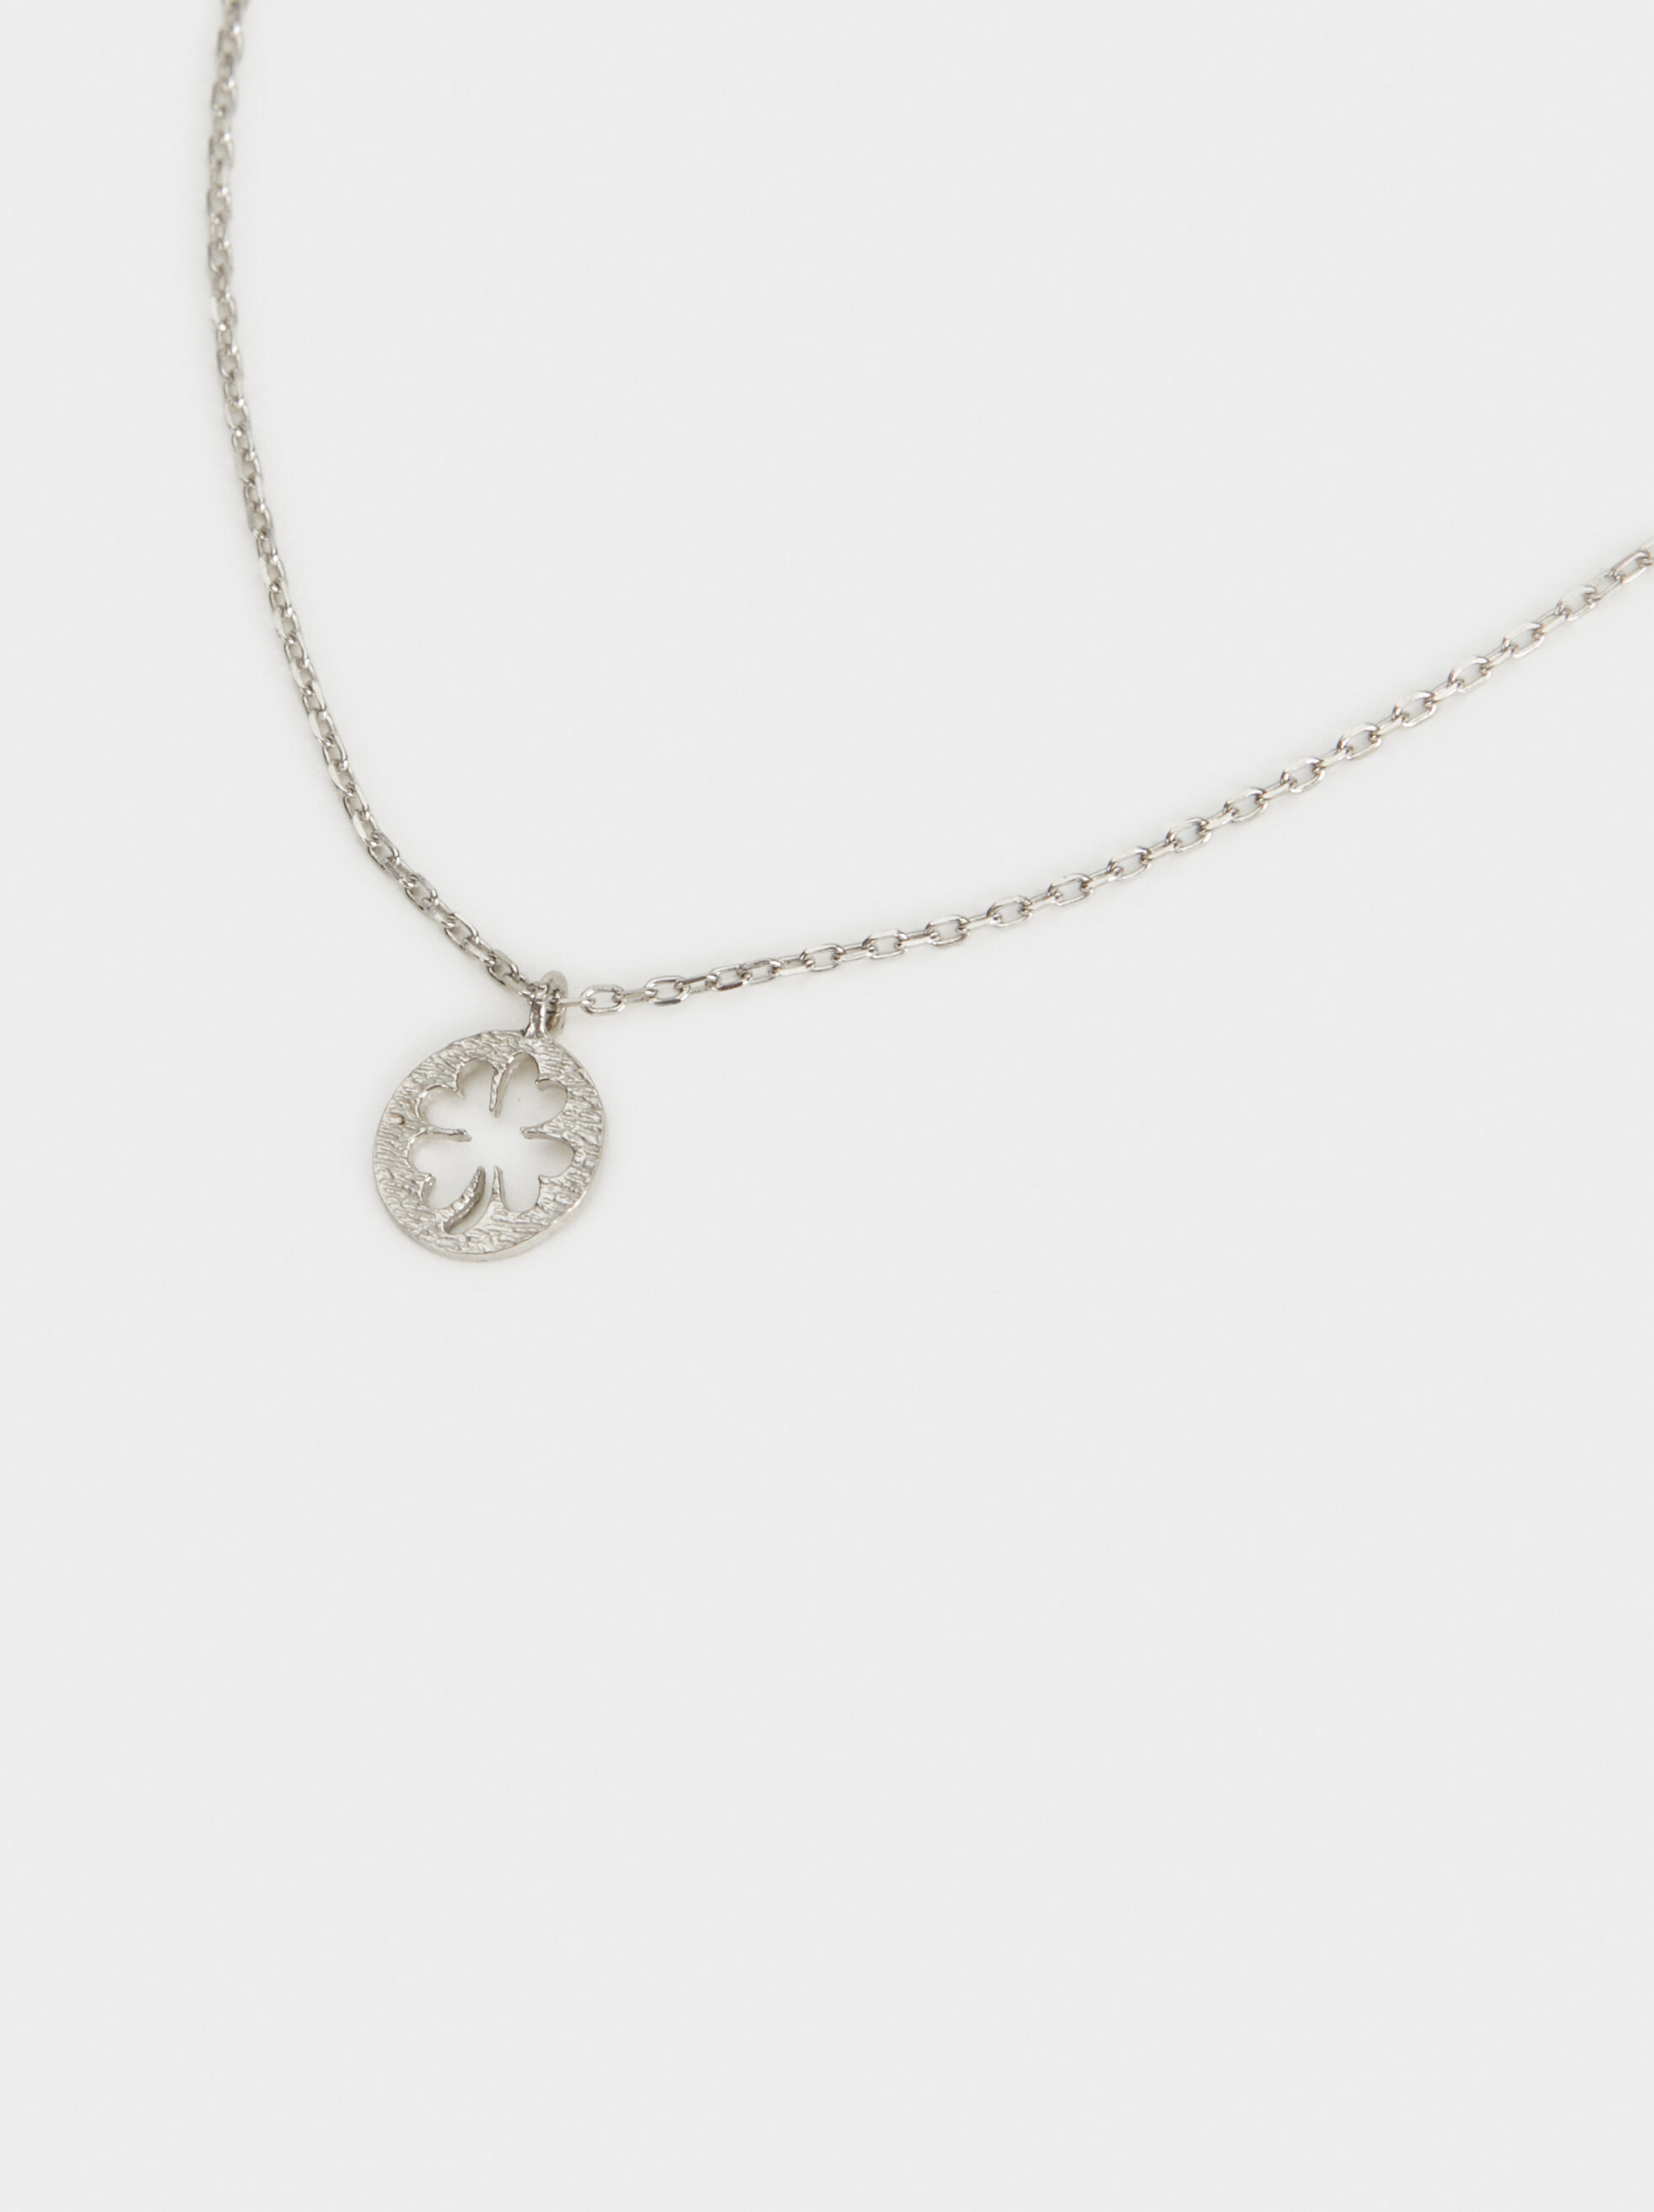 Short 925 Silver Shamrock Necklace, Silver, hi-res